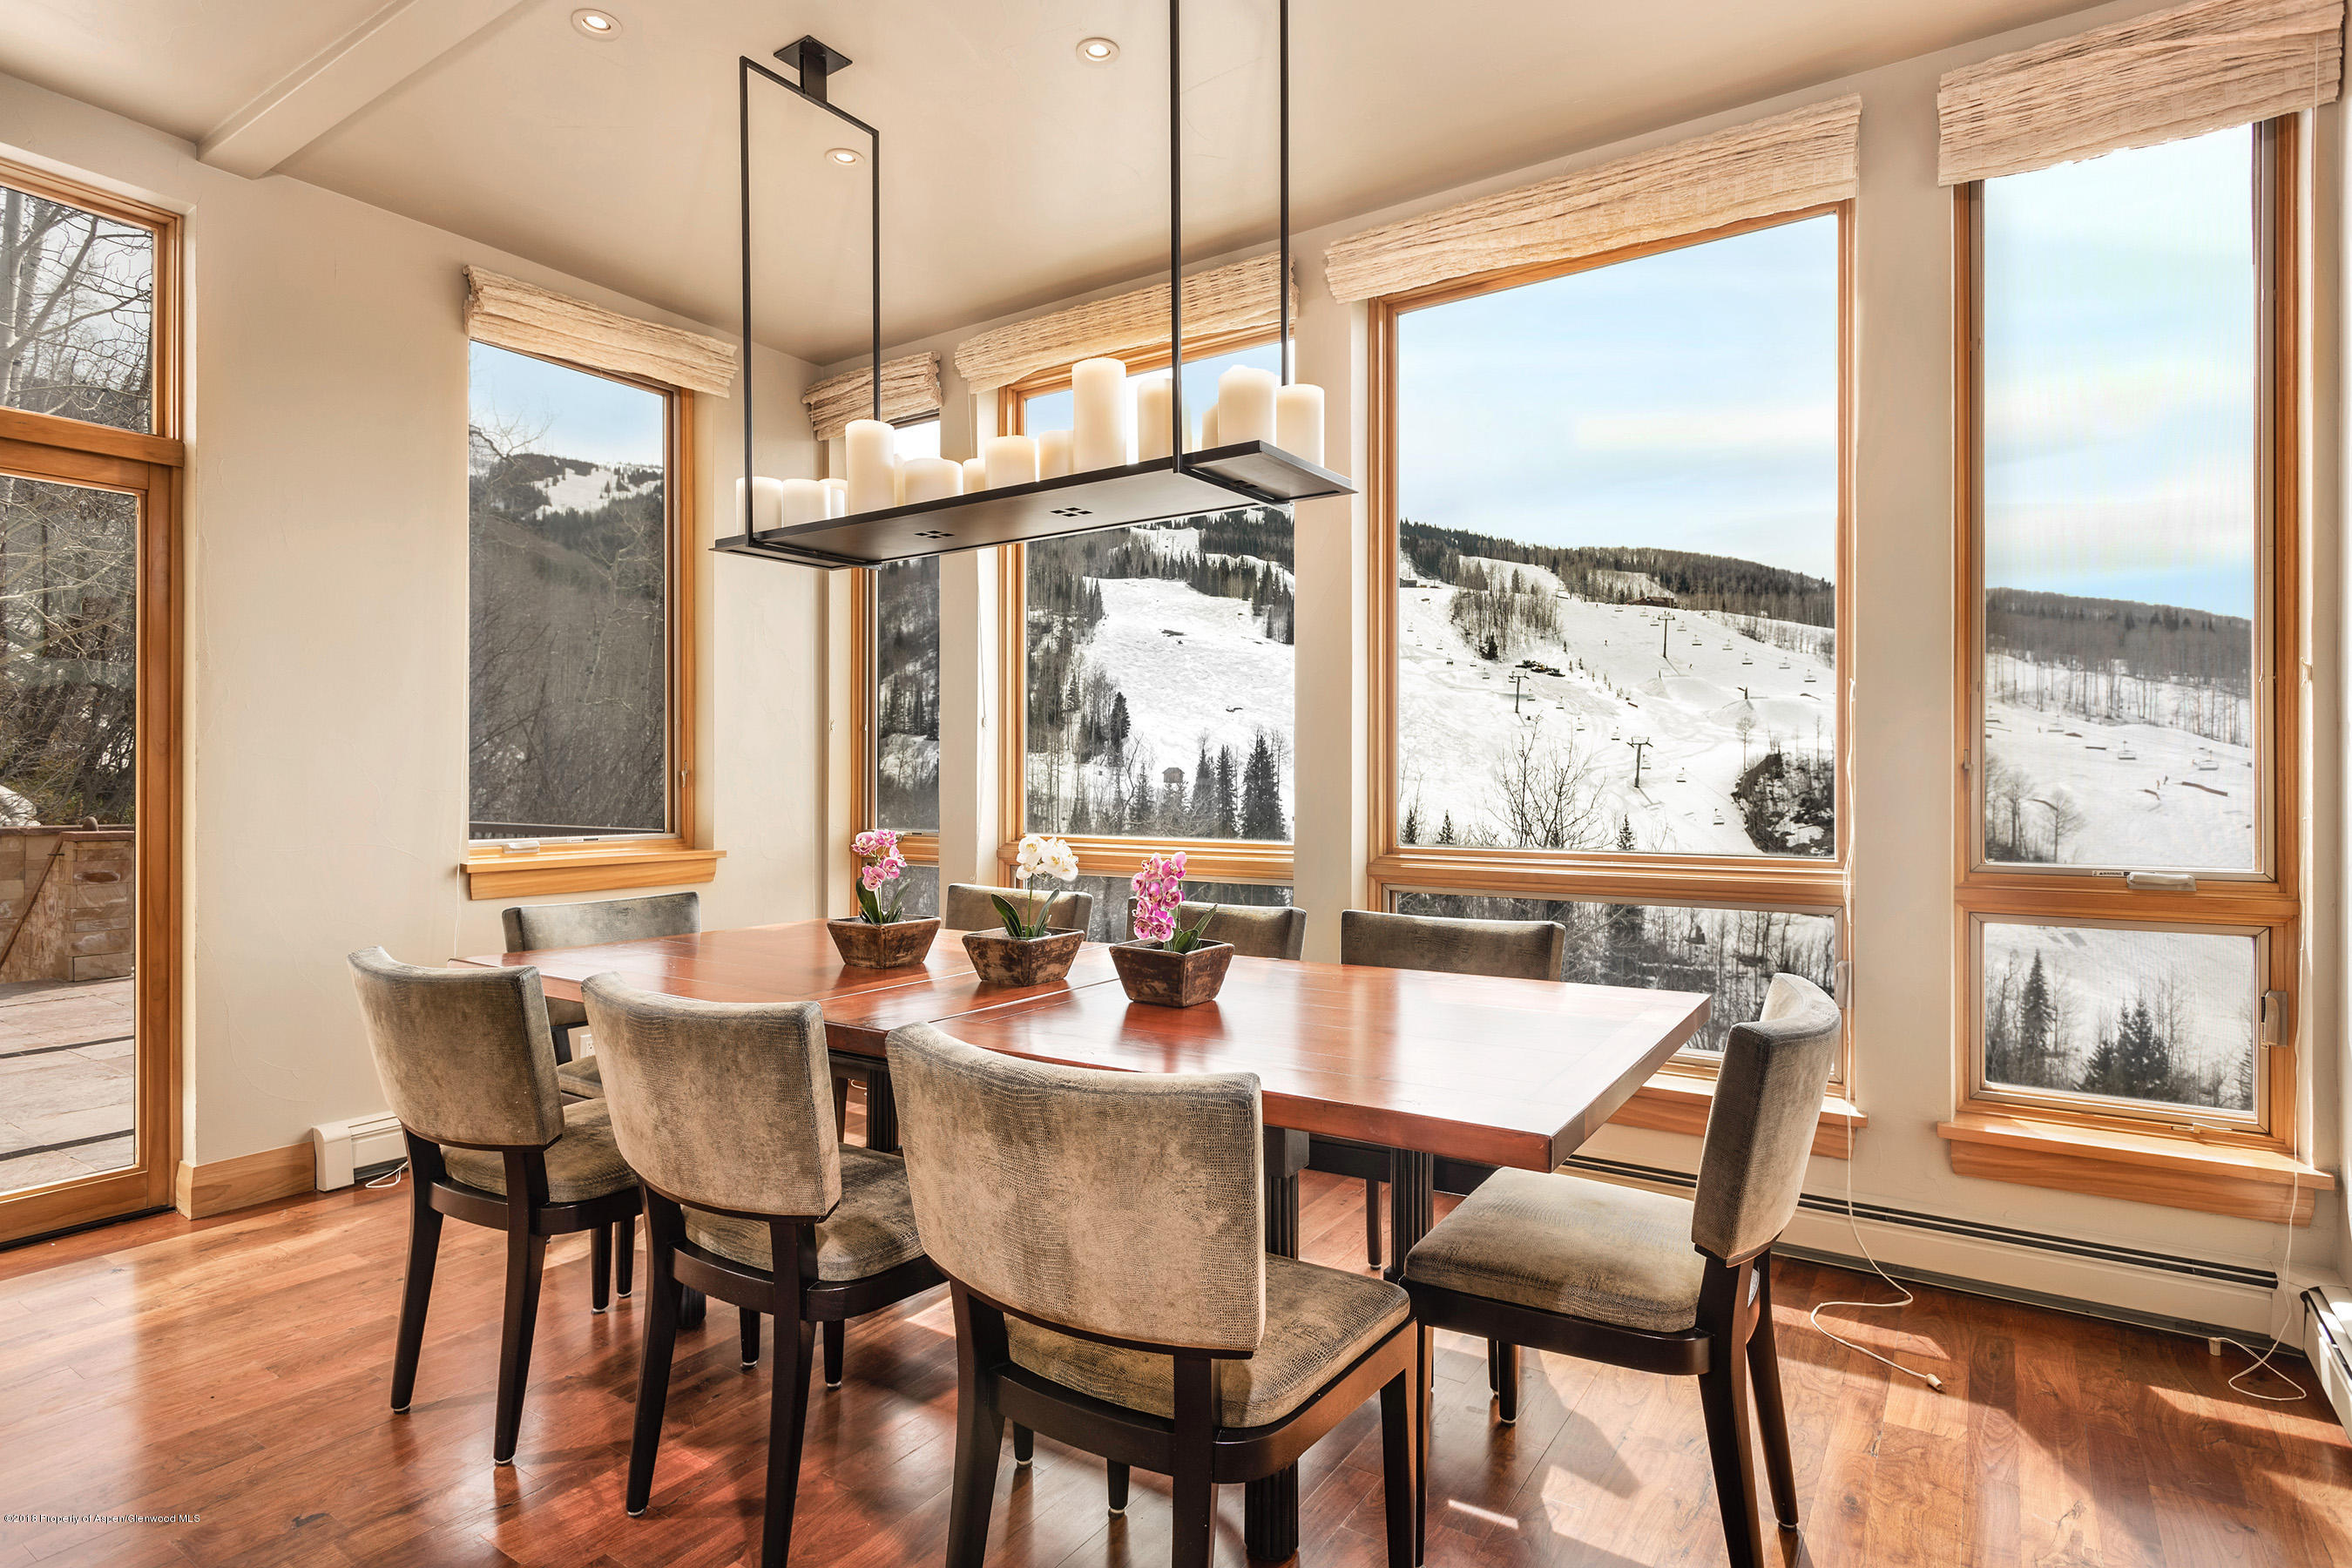 253 Bridge Lane - Snowmass Village, Colorado